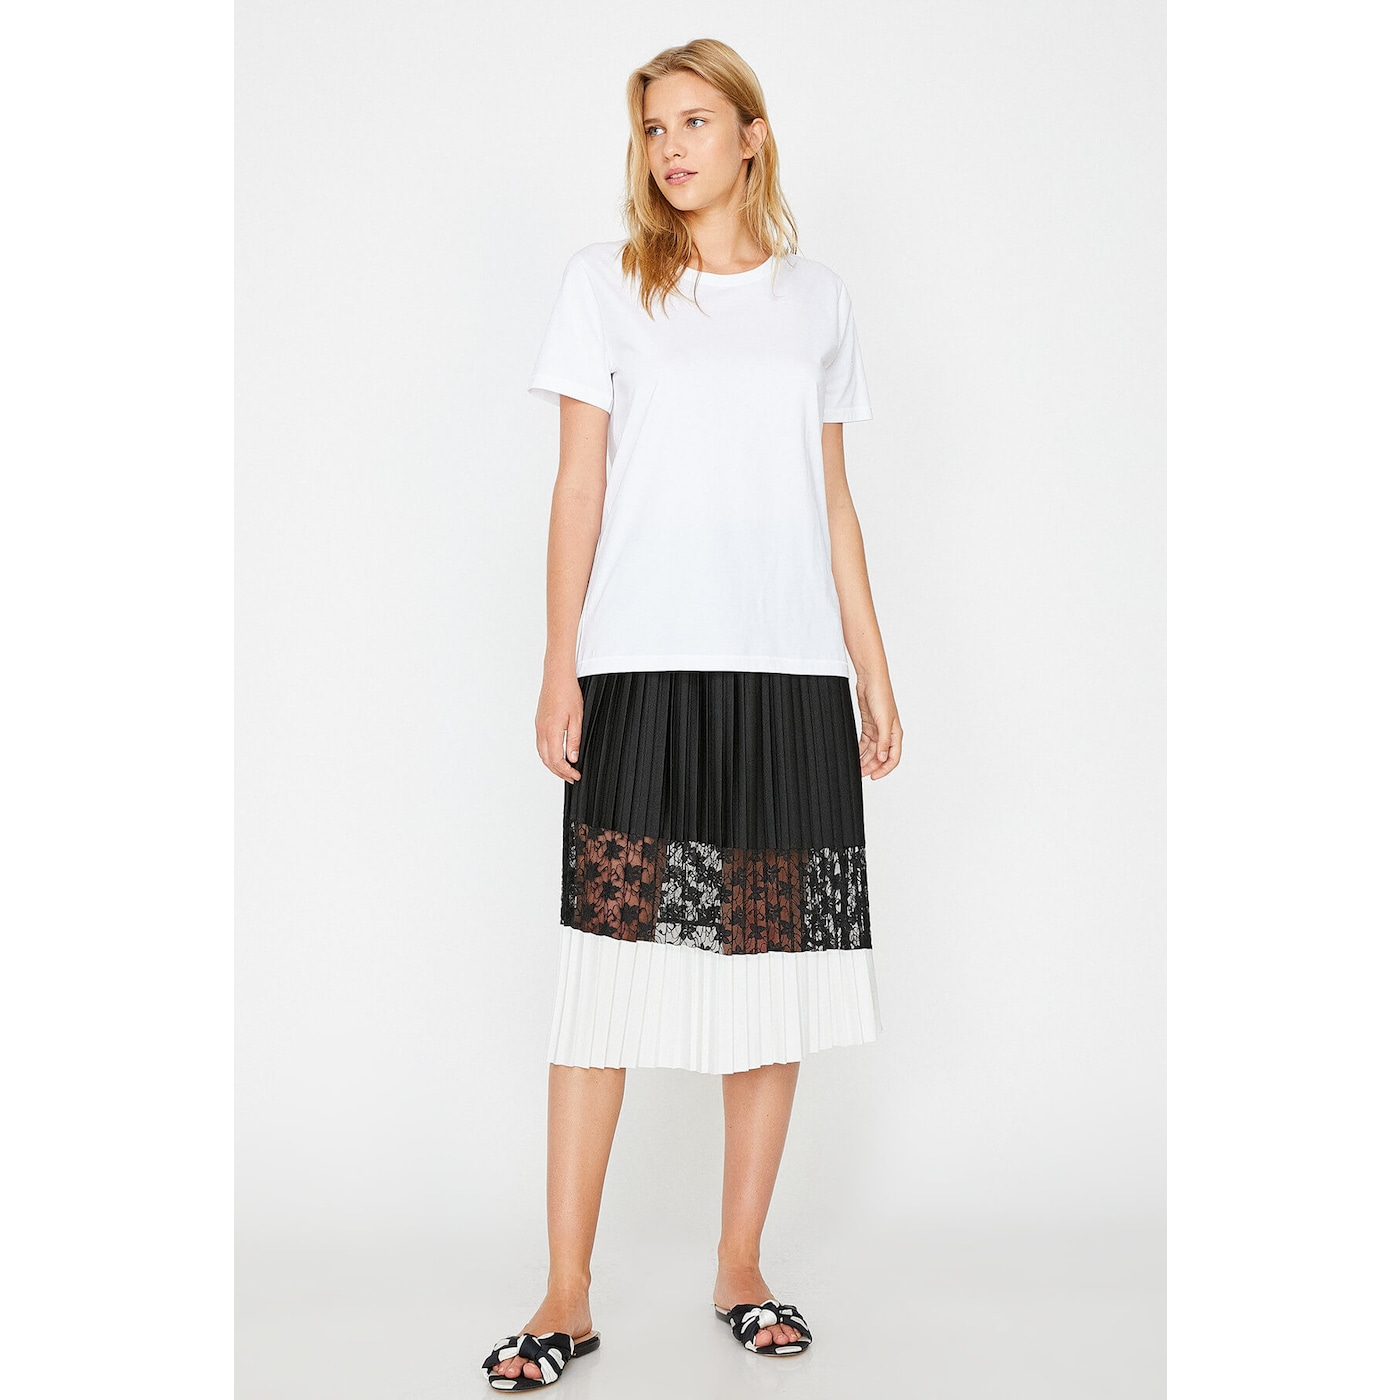 Koton Women Black Skirt